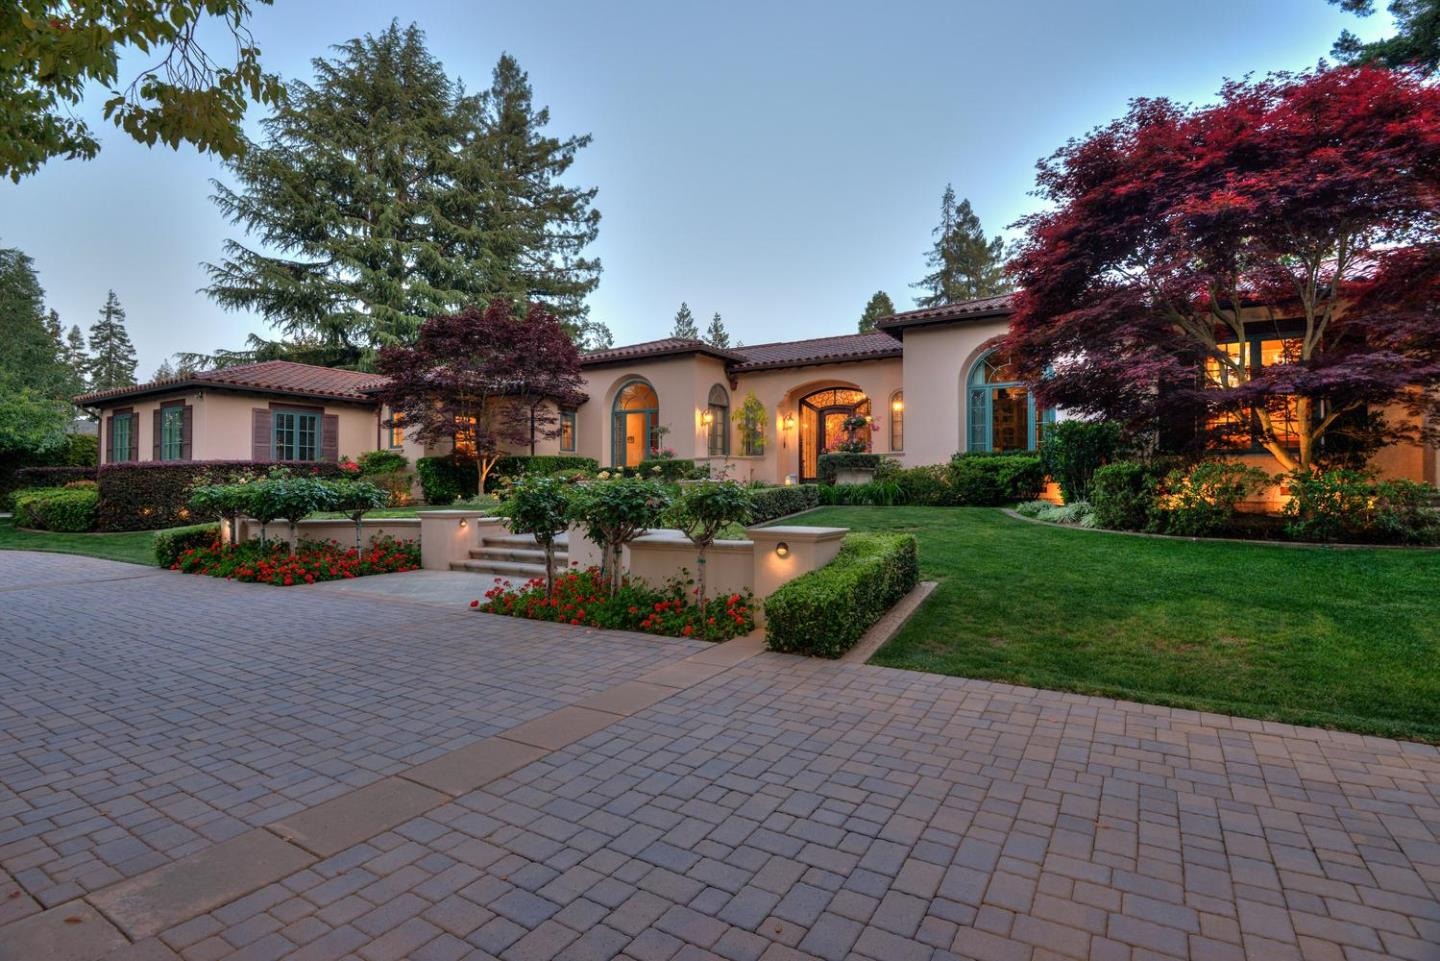 واحد منزل الأسرة للـ Sale في 19880 Robin Way Saratoga, California 95070 United States